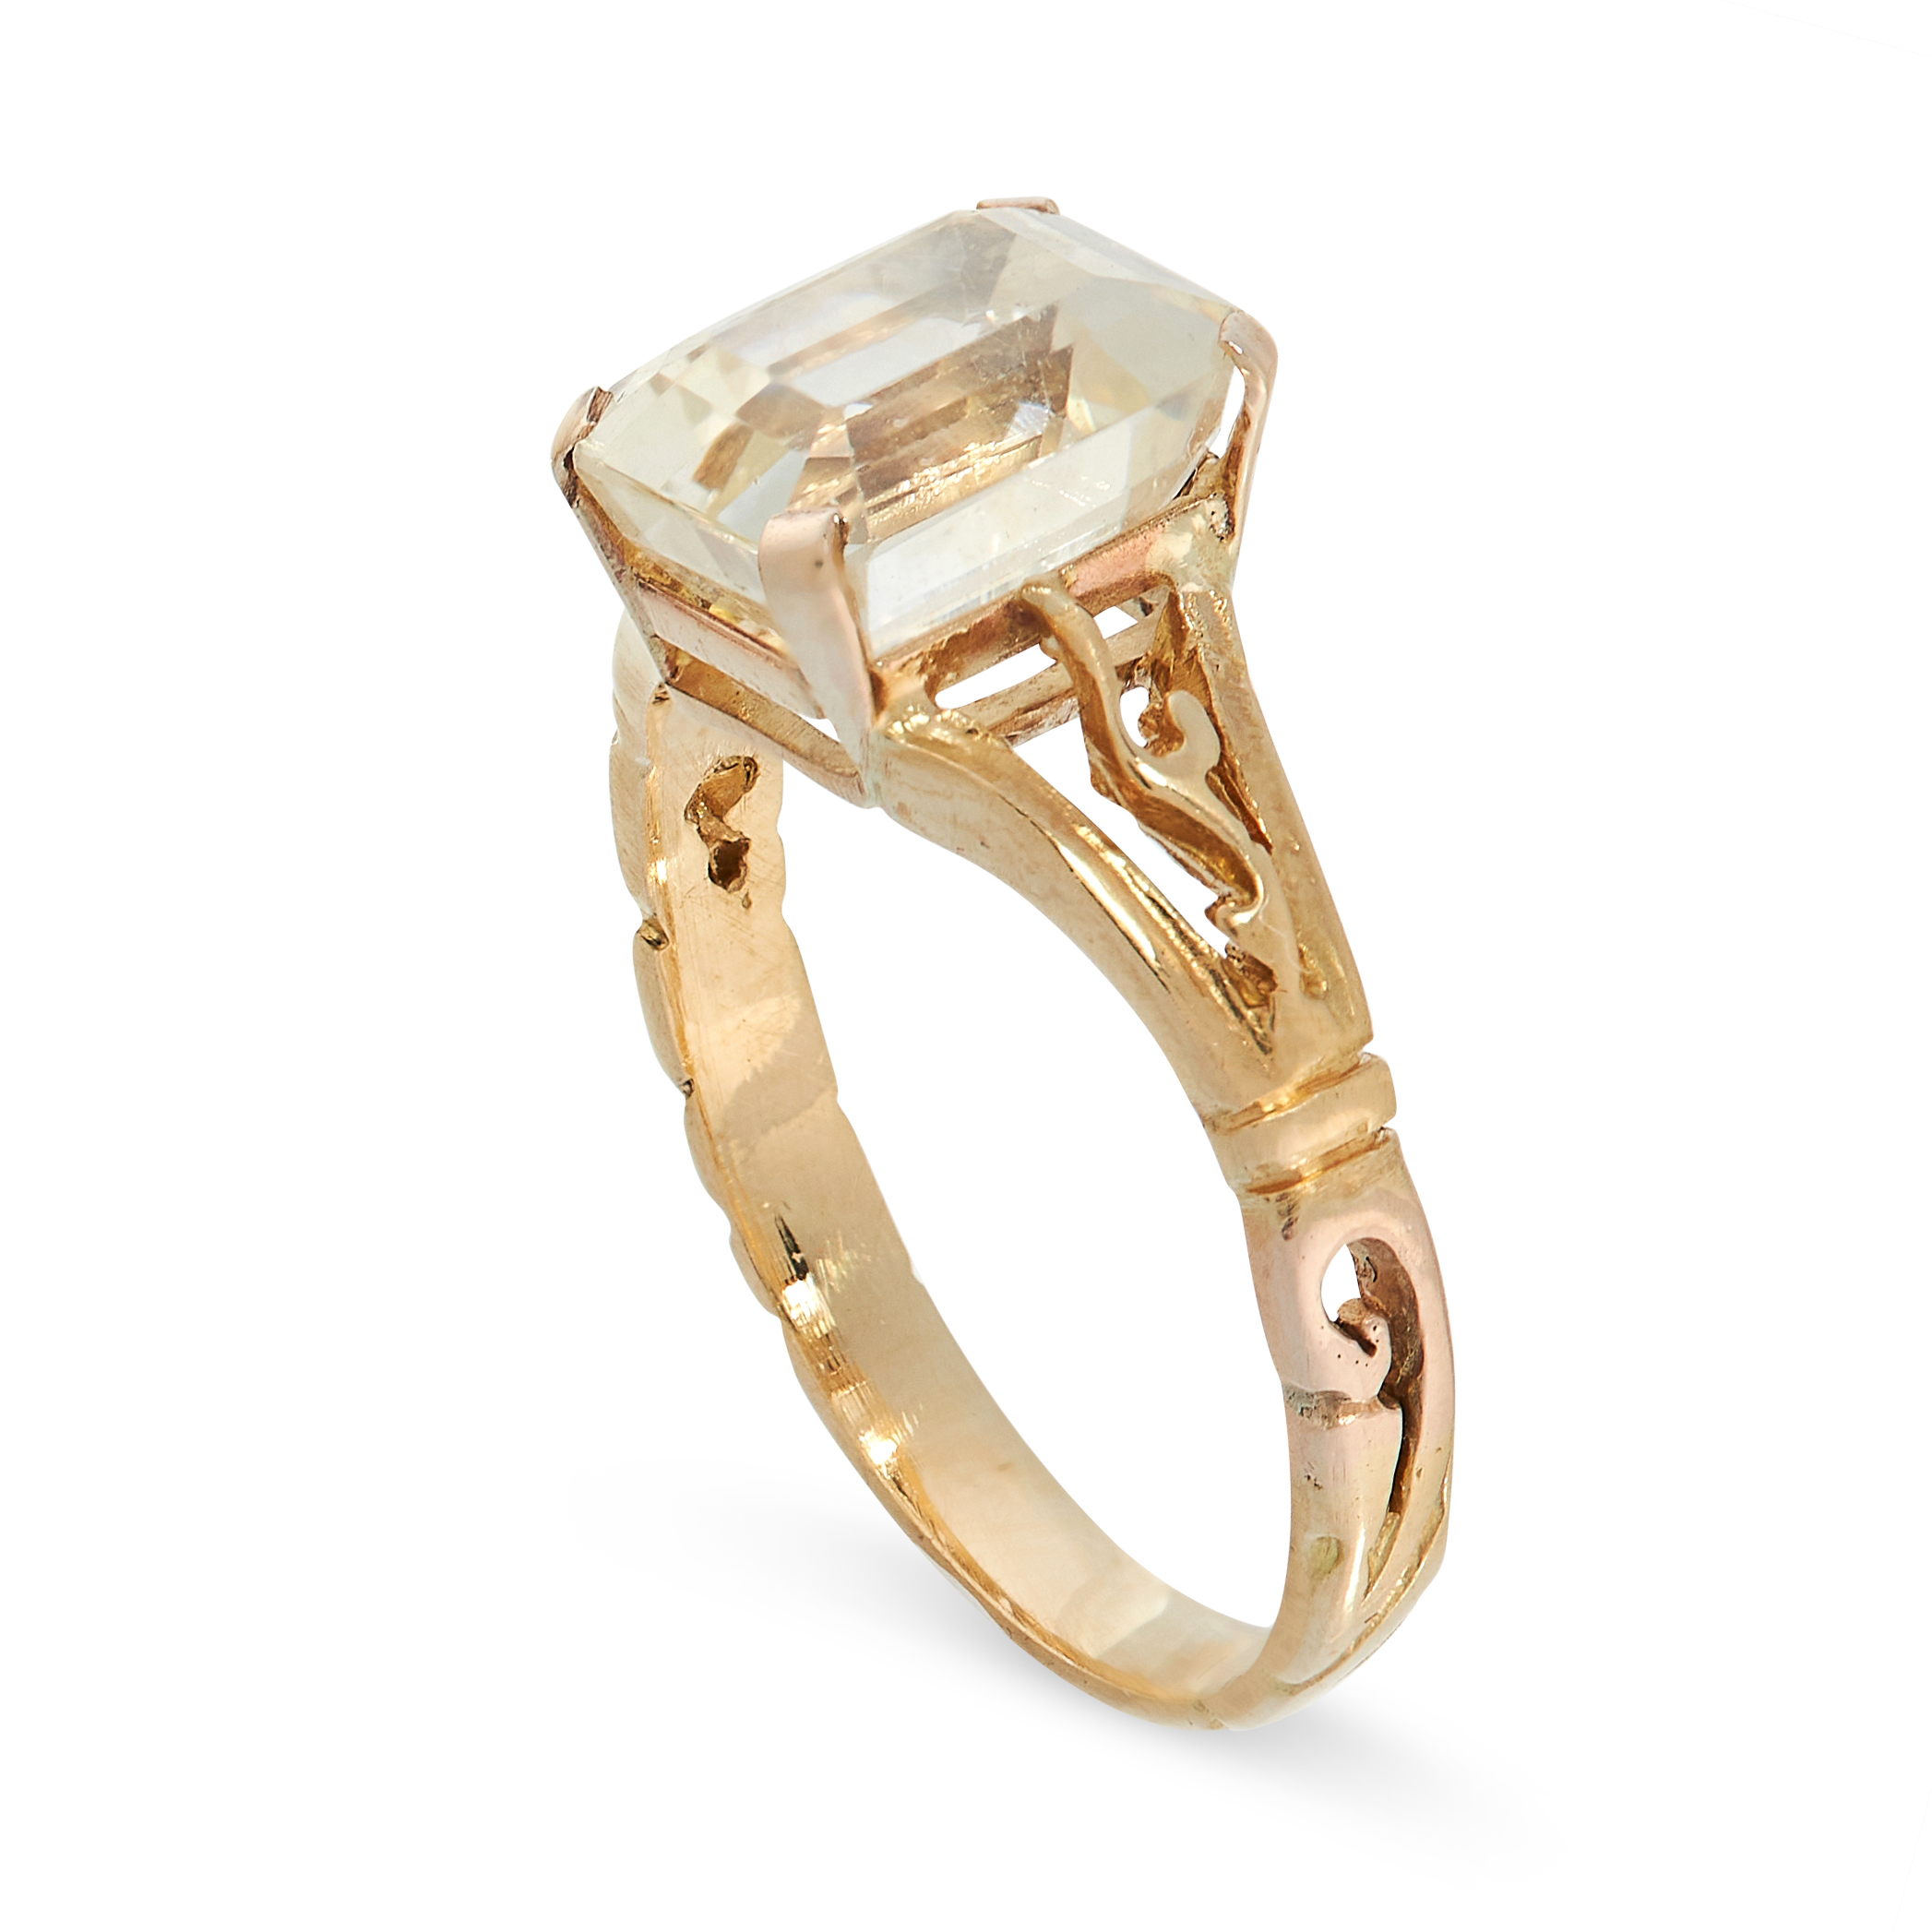 YELLOW SAPPHIRE RING comprising of an emerald cut yellow sapphire of 2.57 carats with scrolling - Image 2 of 2